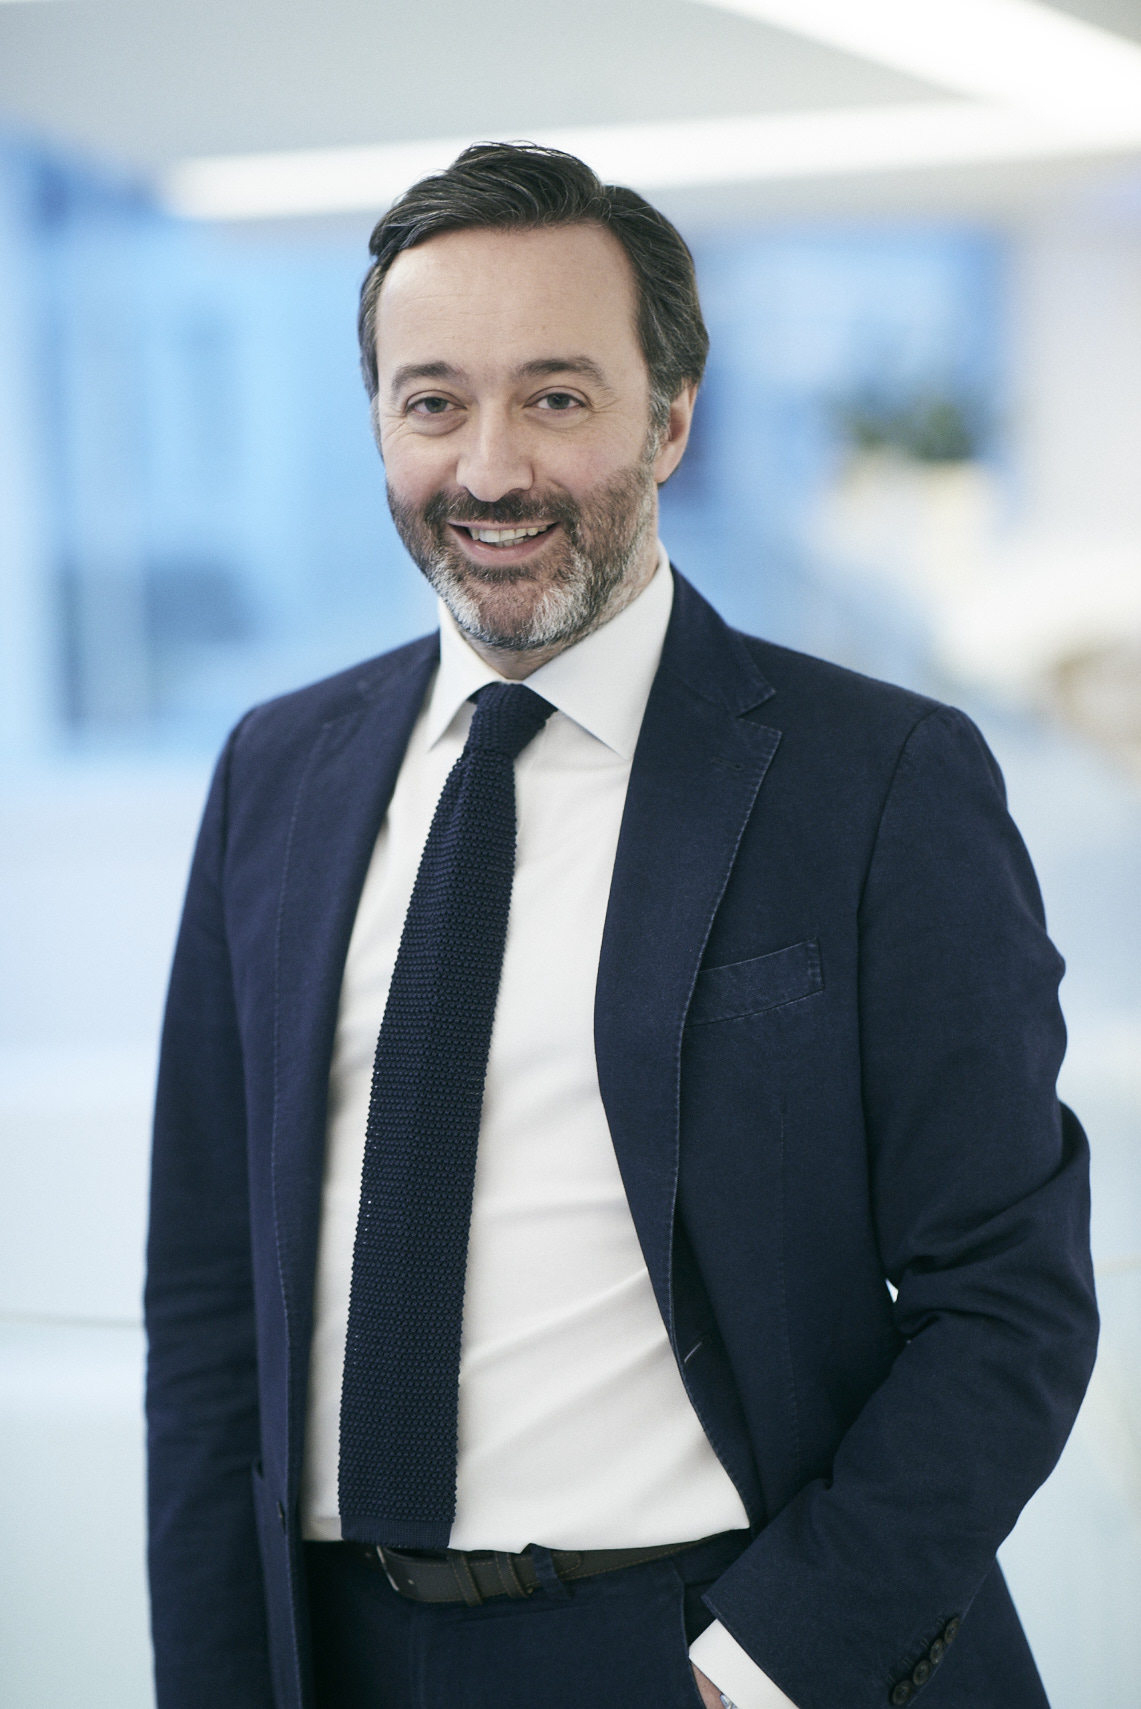 Coty Luxury France Appoints Mathieu Dufresne As General pour Mathieu Dufresne